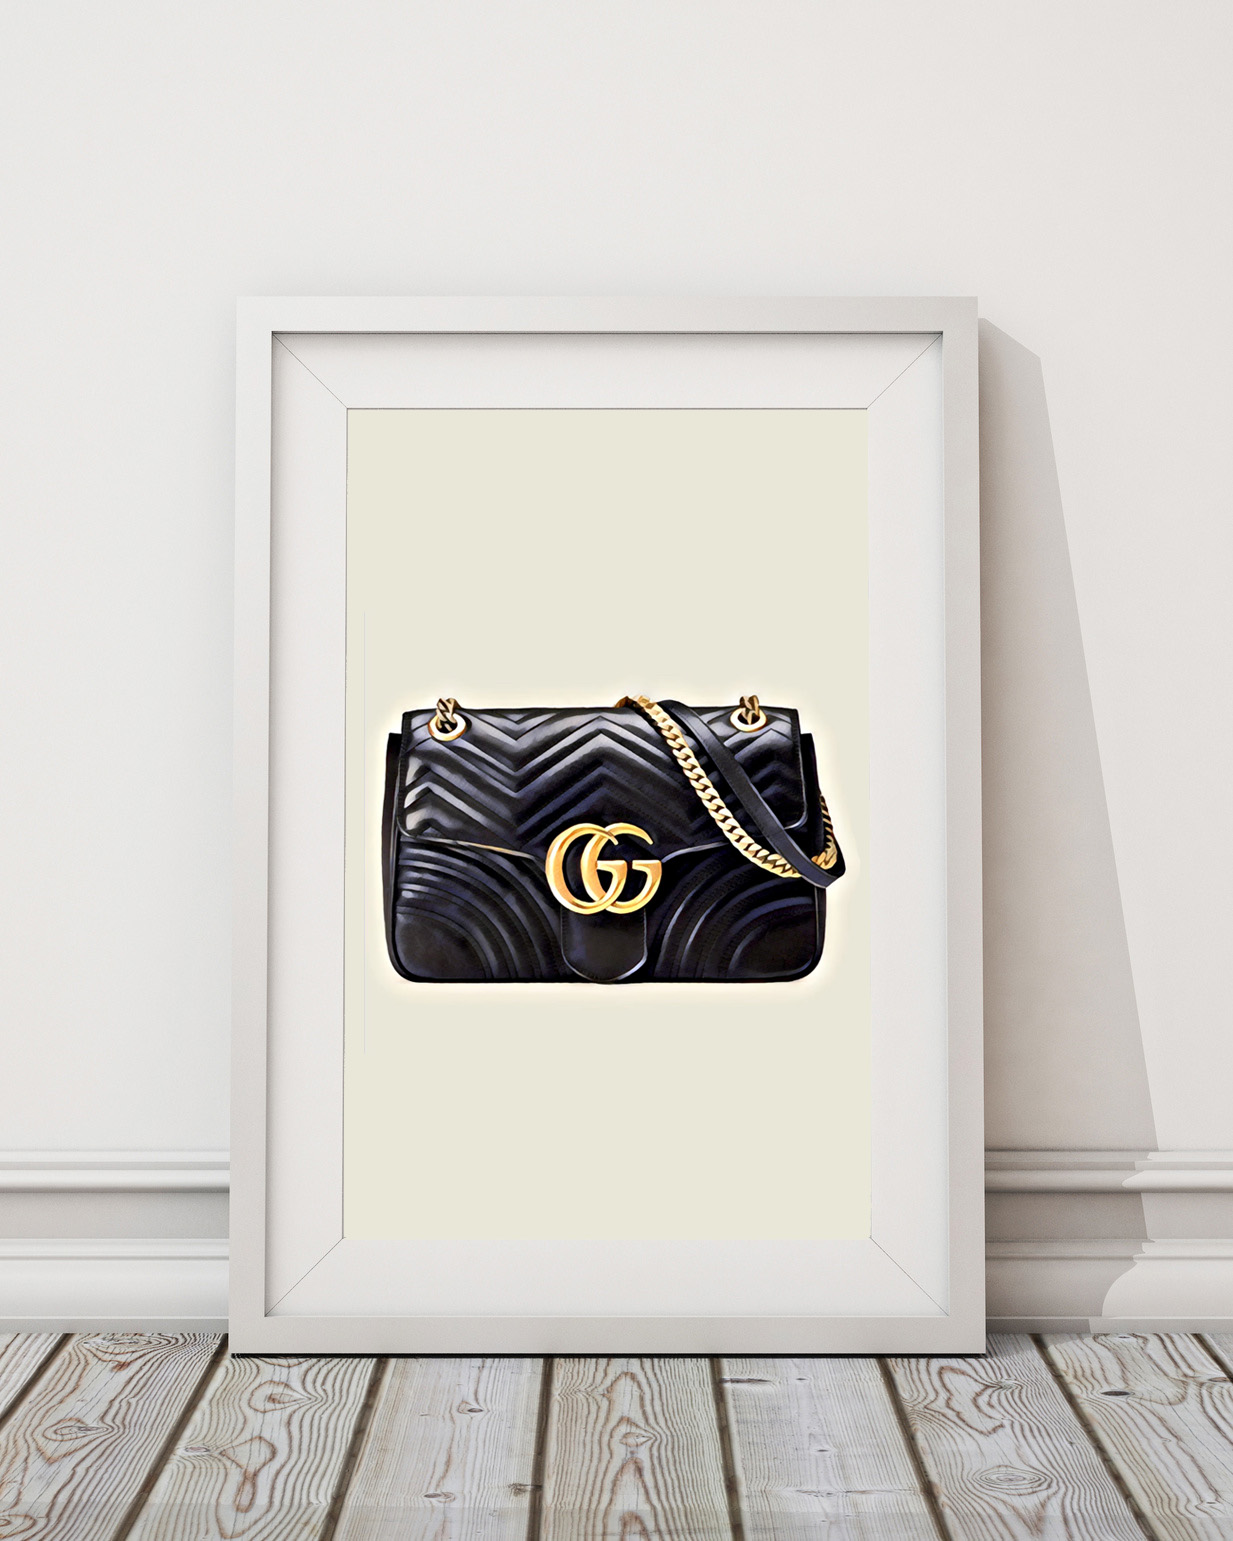 c2cf50aec54 Black Gucci Marmont Bag with gold hardware poster artwork